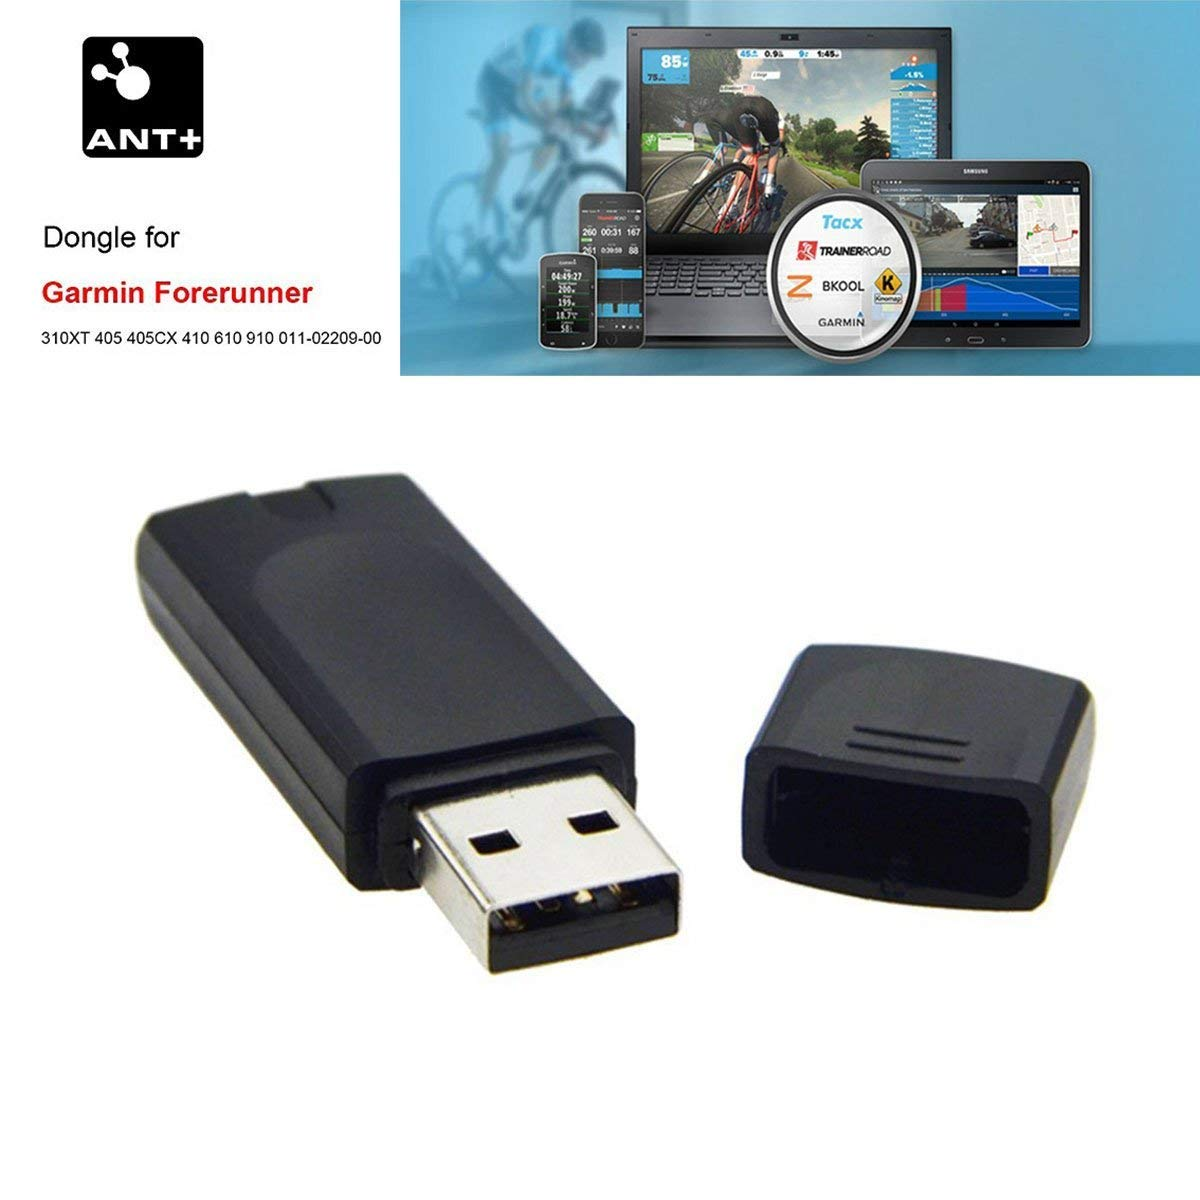 Mini USB ANT+ STICK FOR Garmin, Sunnto, Zwift, PerfPRO Studio, CycleOps Virtual Trainer, TrainerRoad Onlyesh